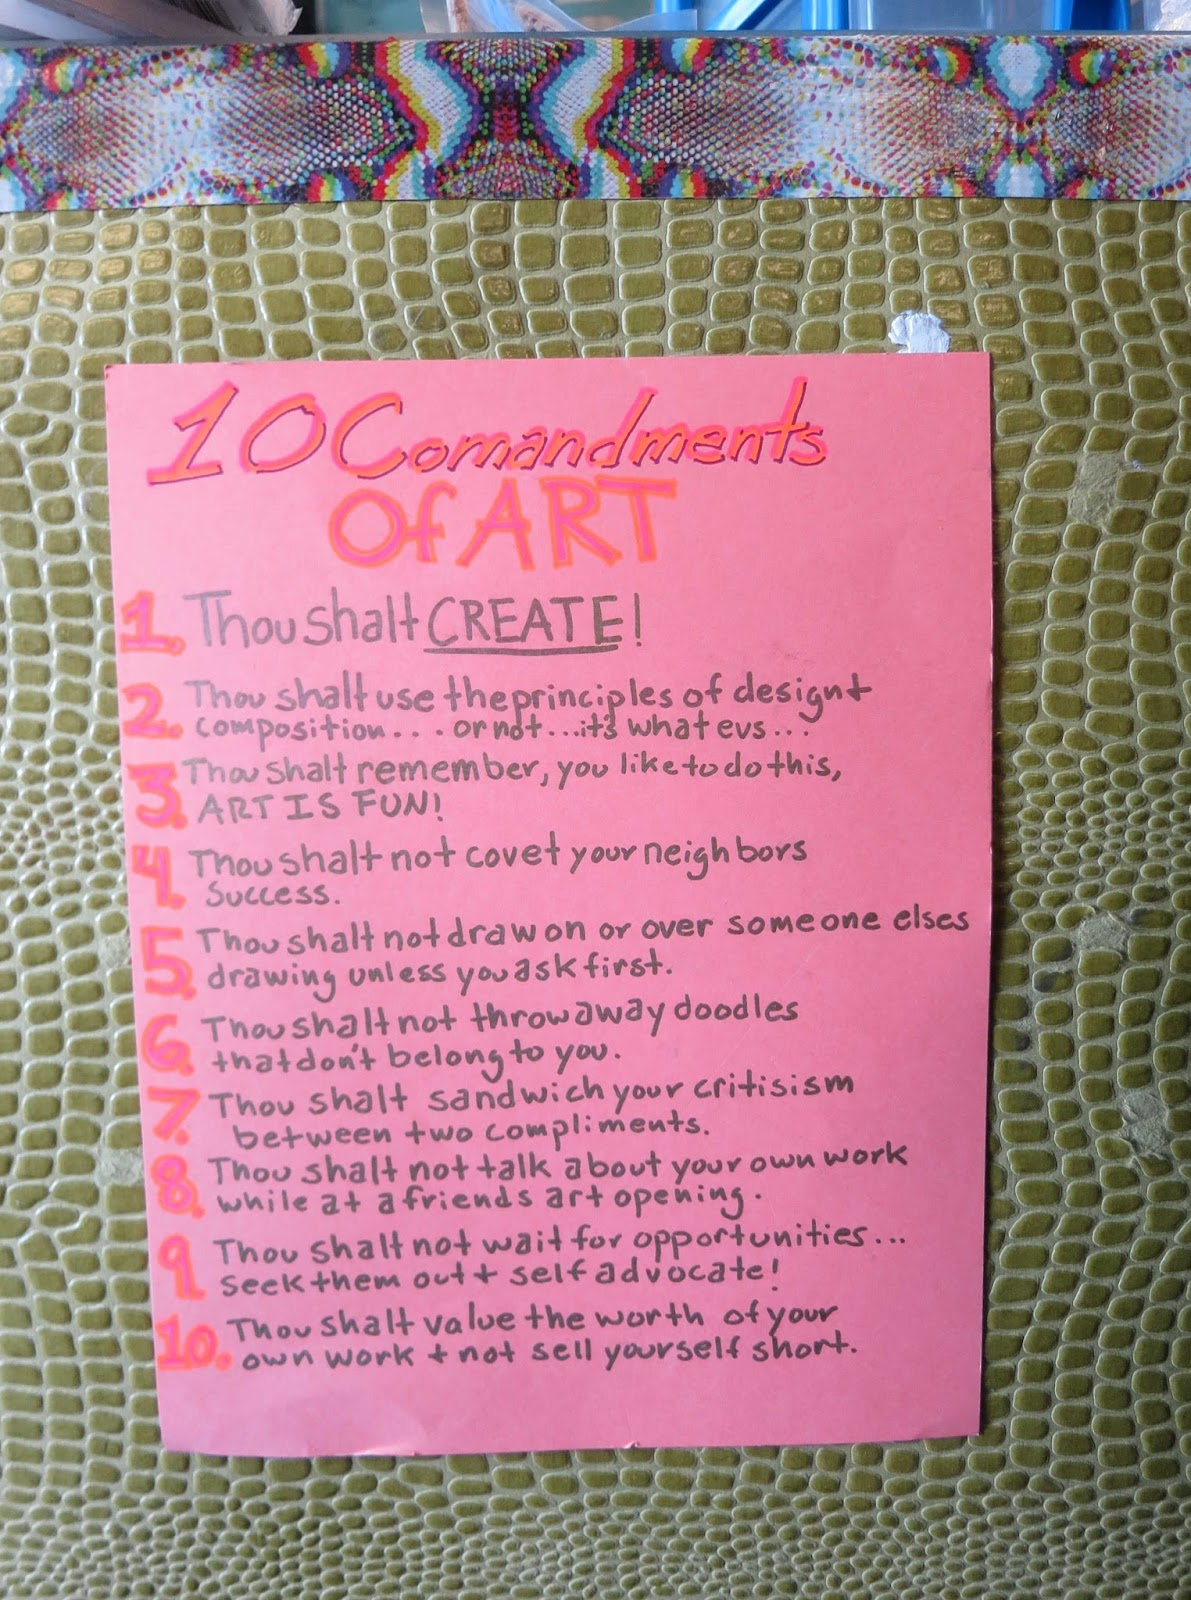 The zehnkatzen times art the 10 commandments of art portland style 10commandmentsofartibfg solutioingenieria Image collections